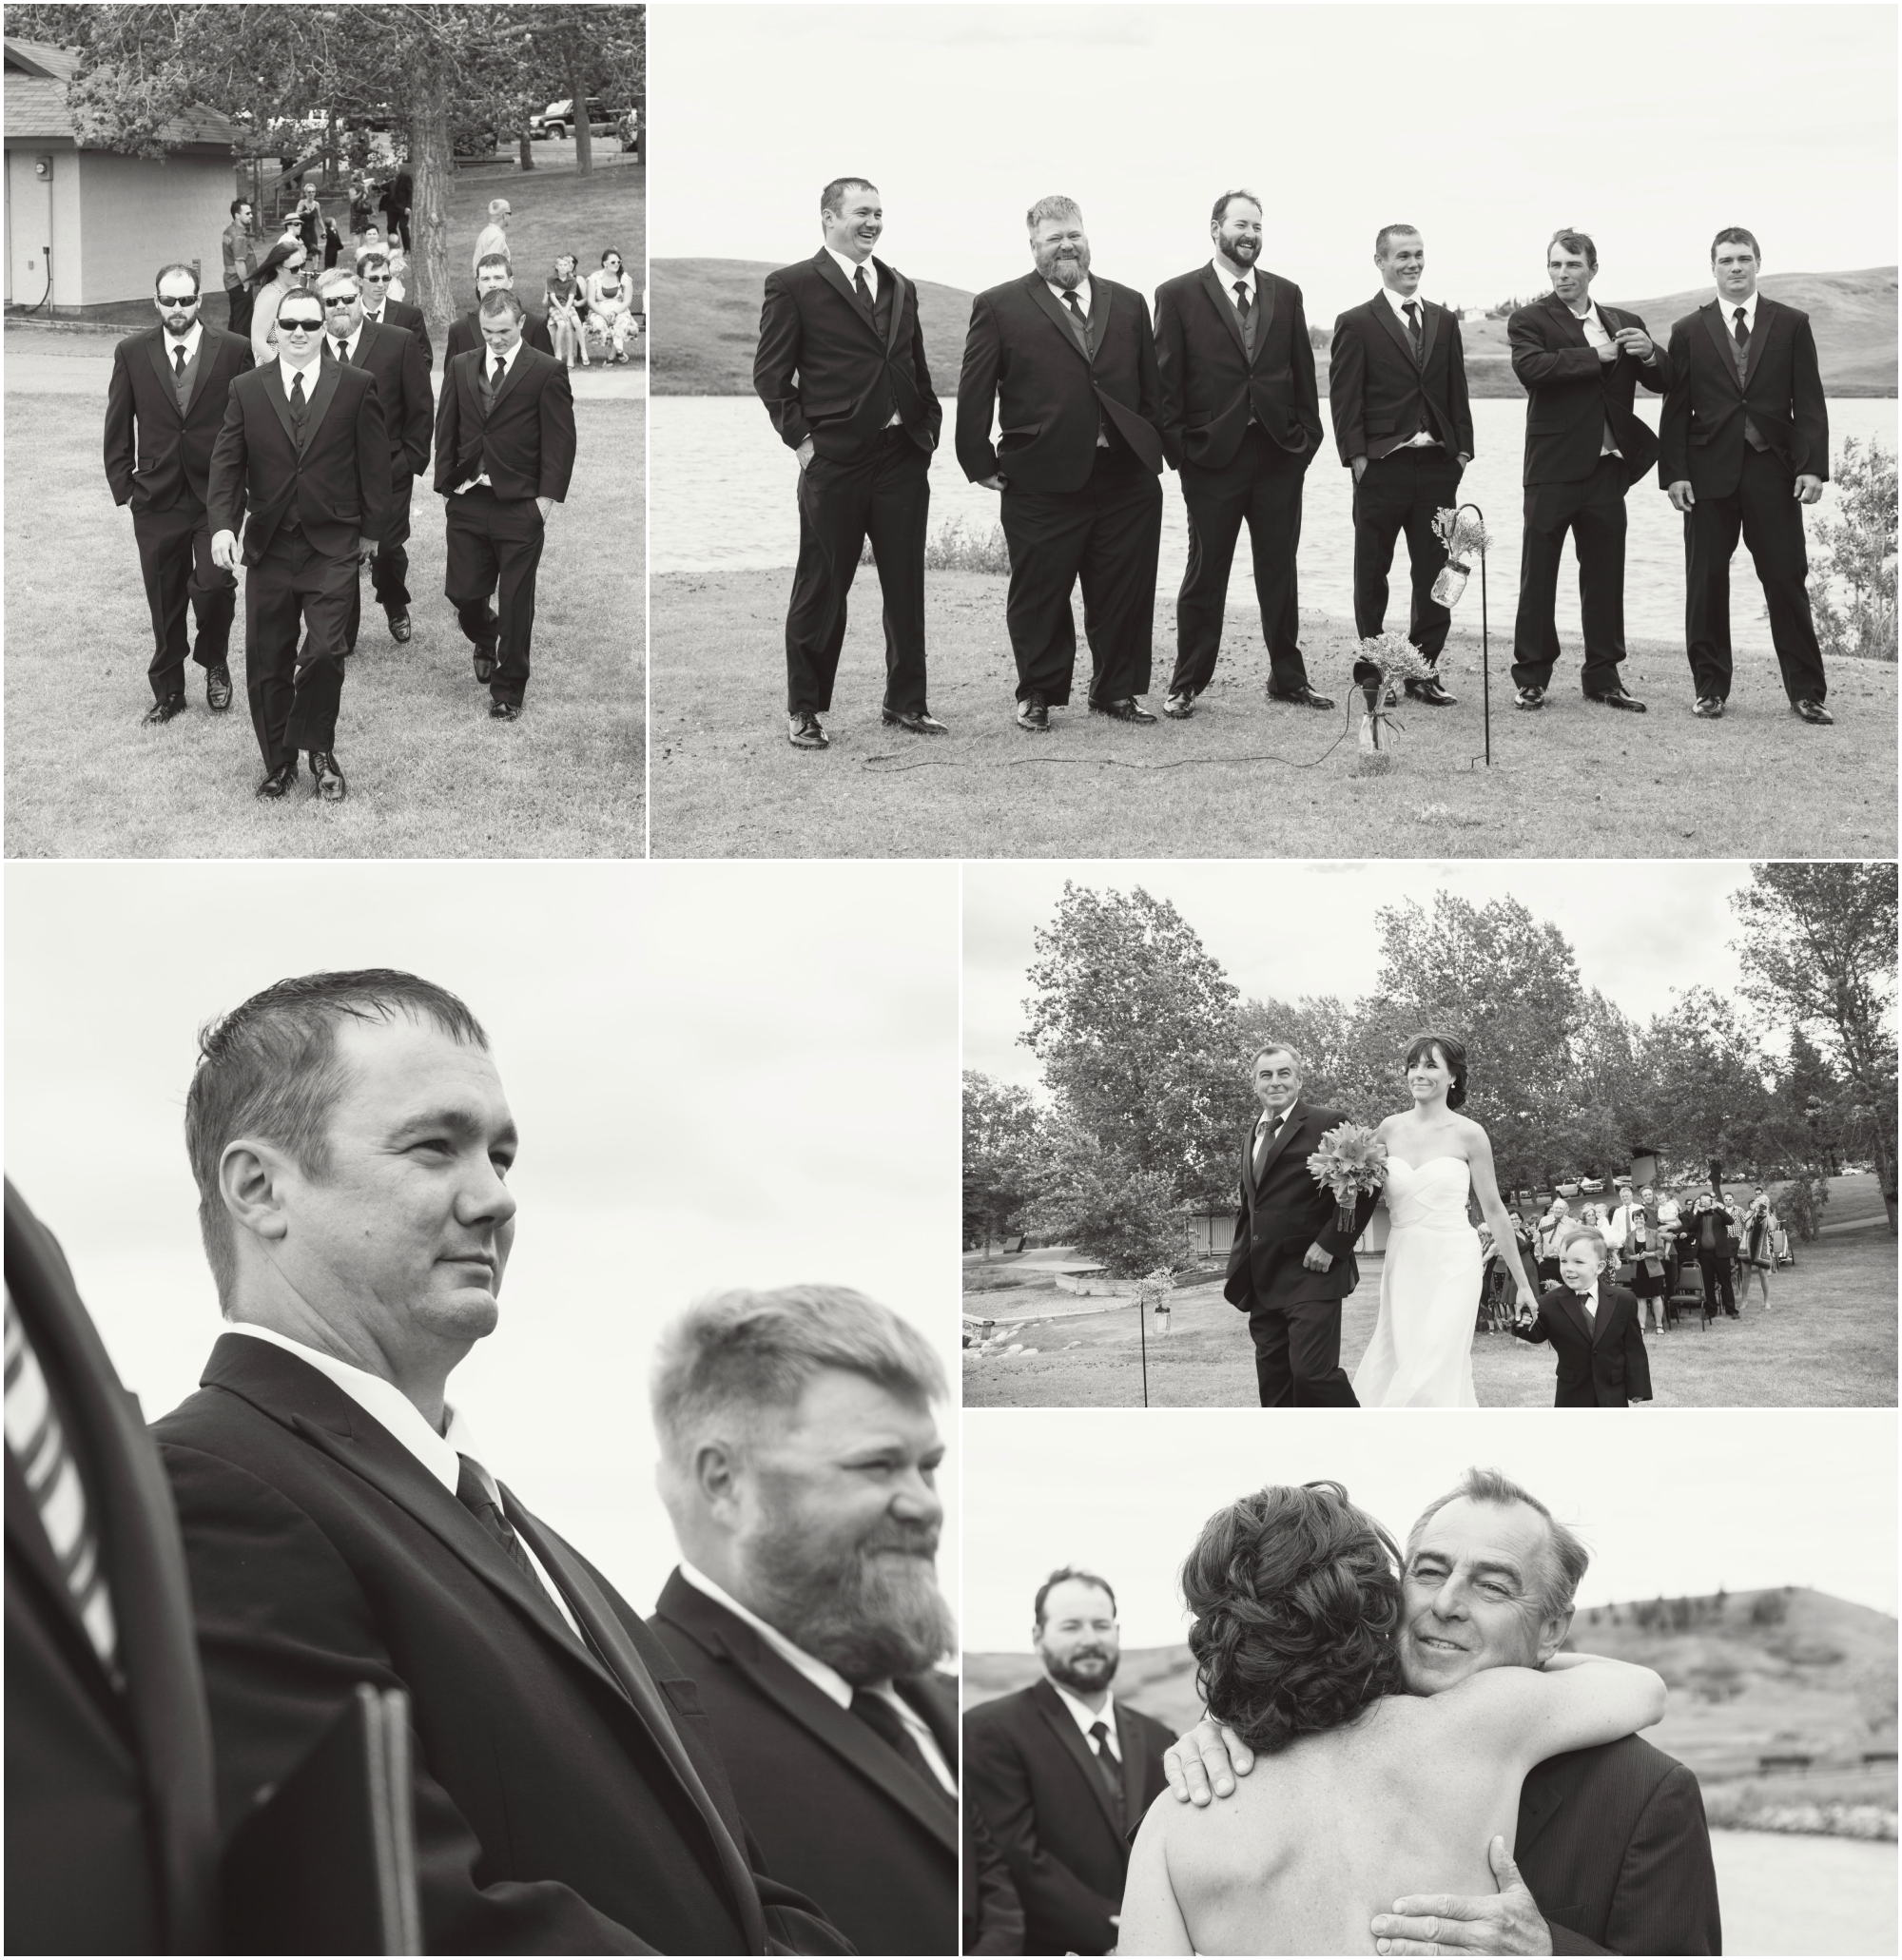 elkwater_wedding_peninsula_02.png